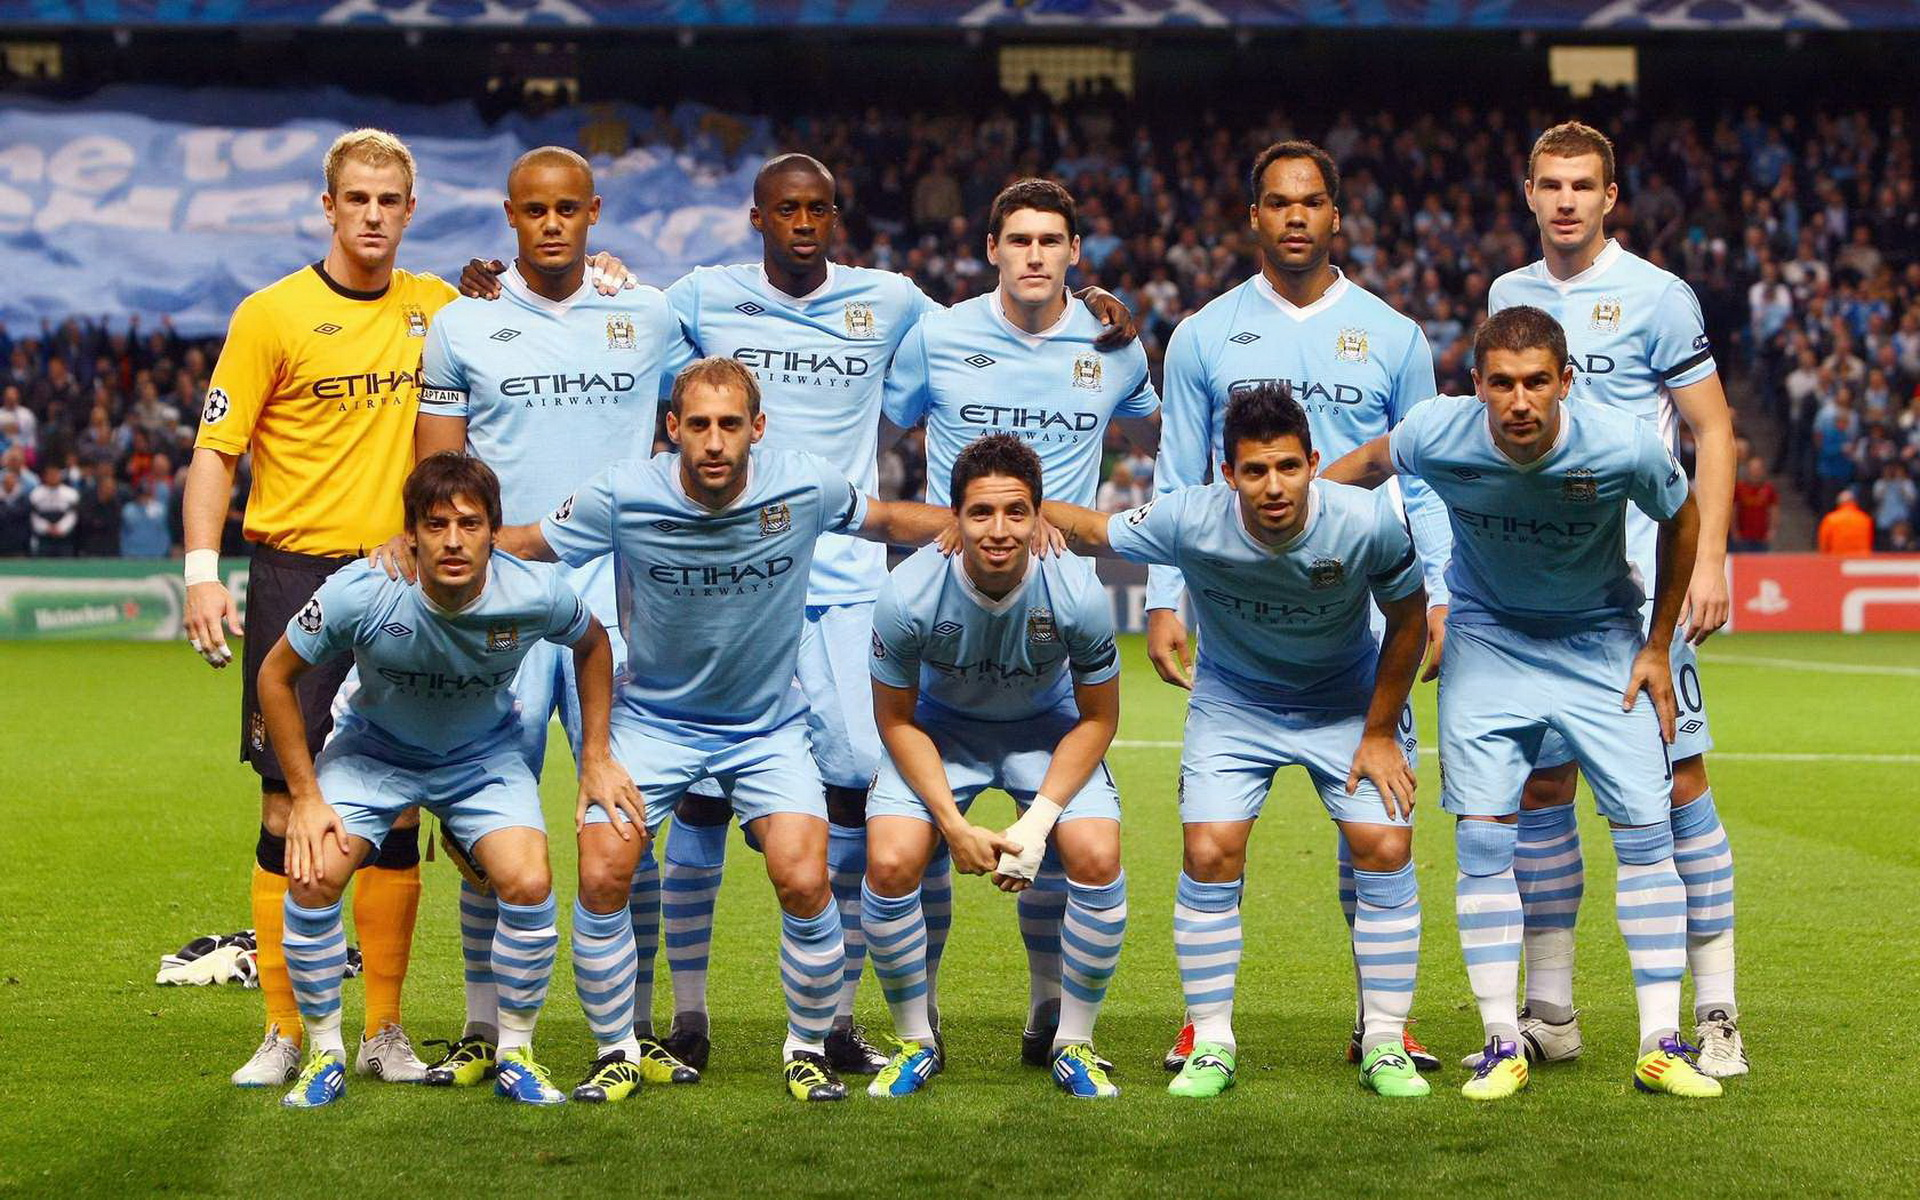 The Evolution of the Manchester City Kits